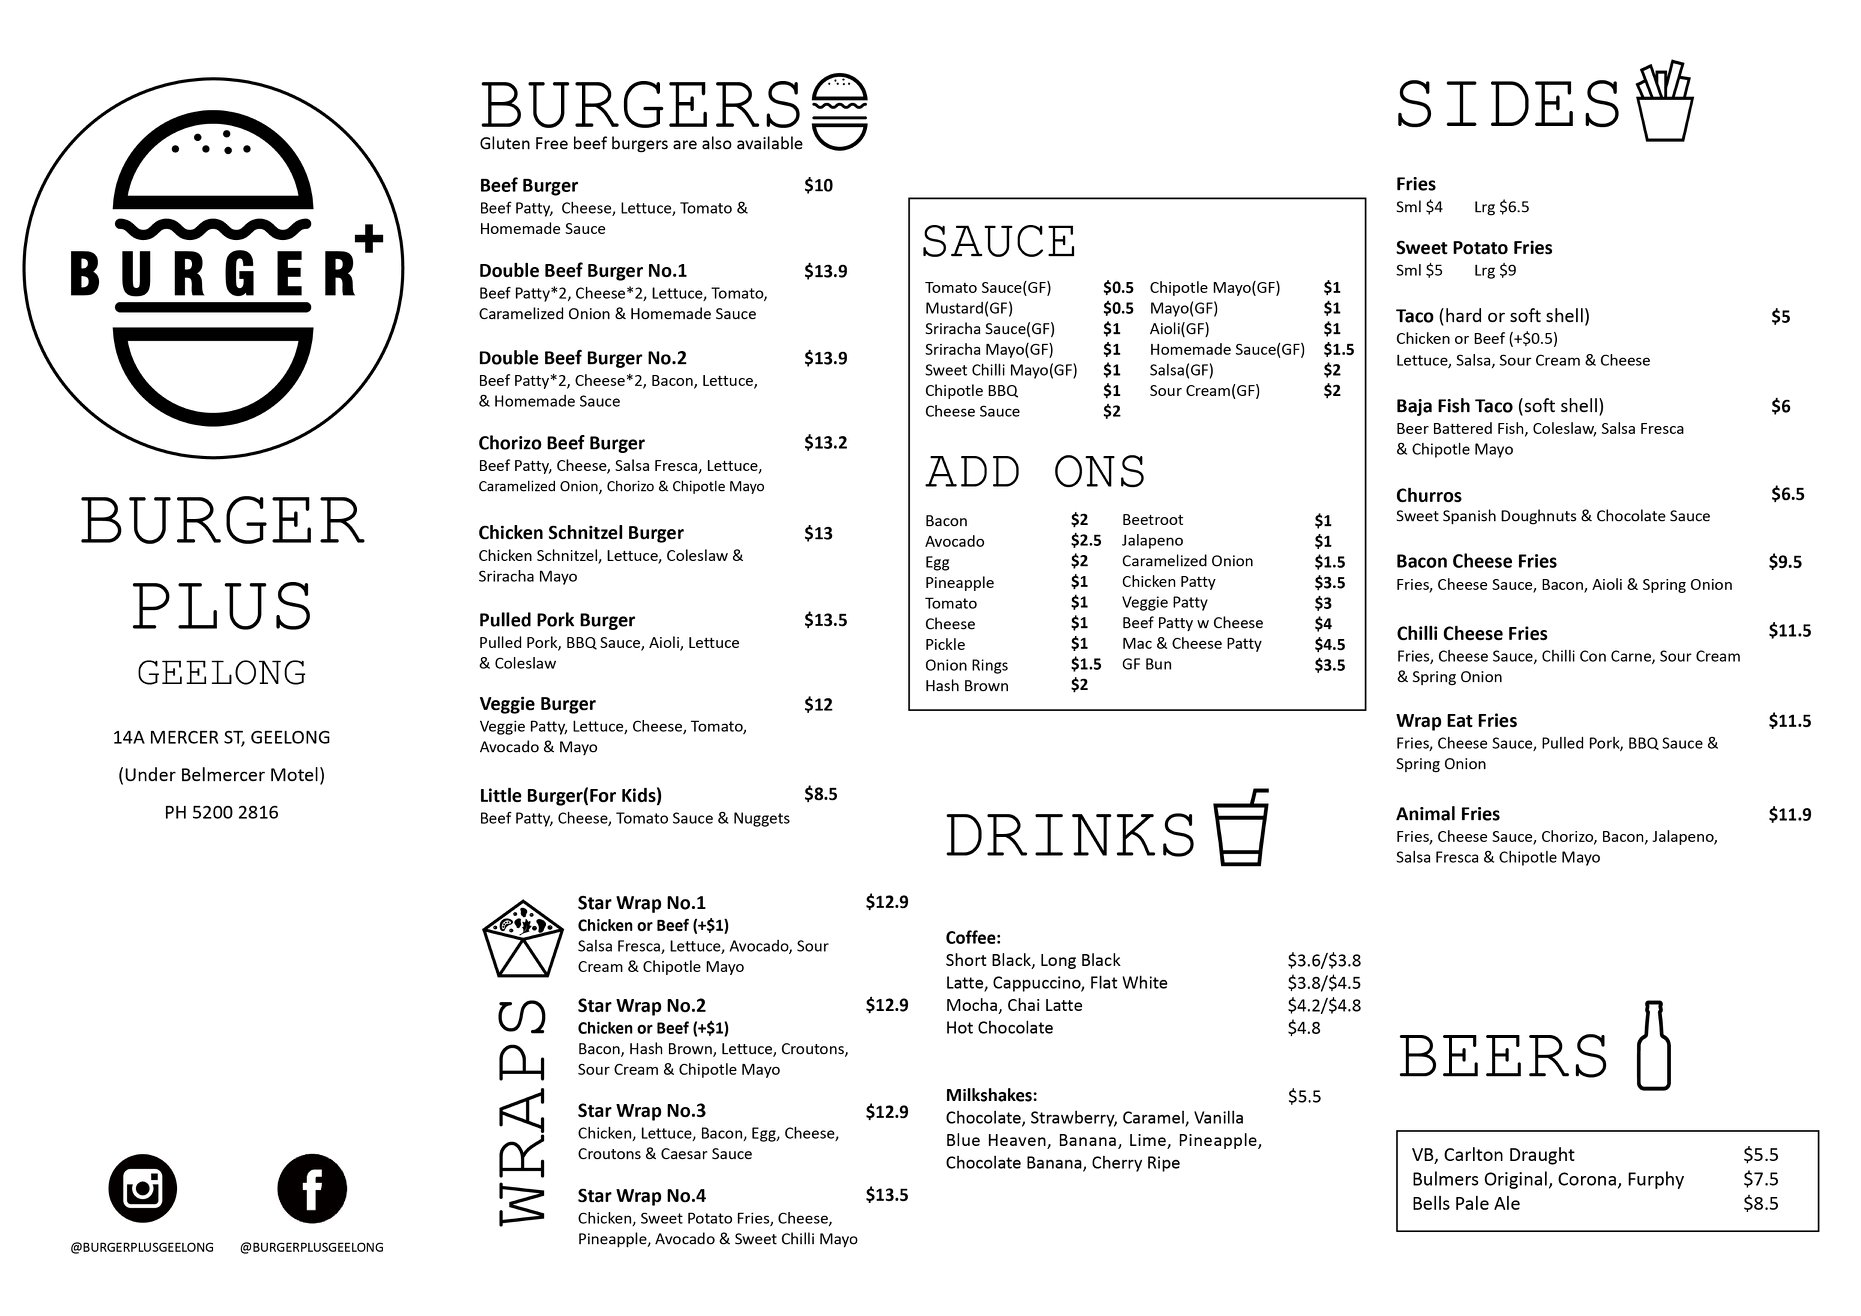 Burger Plus Menu